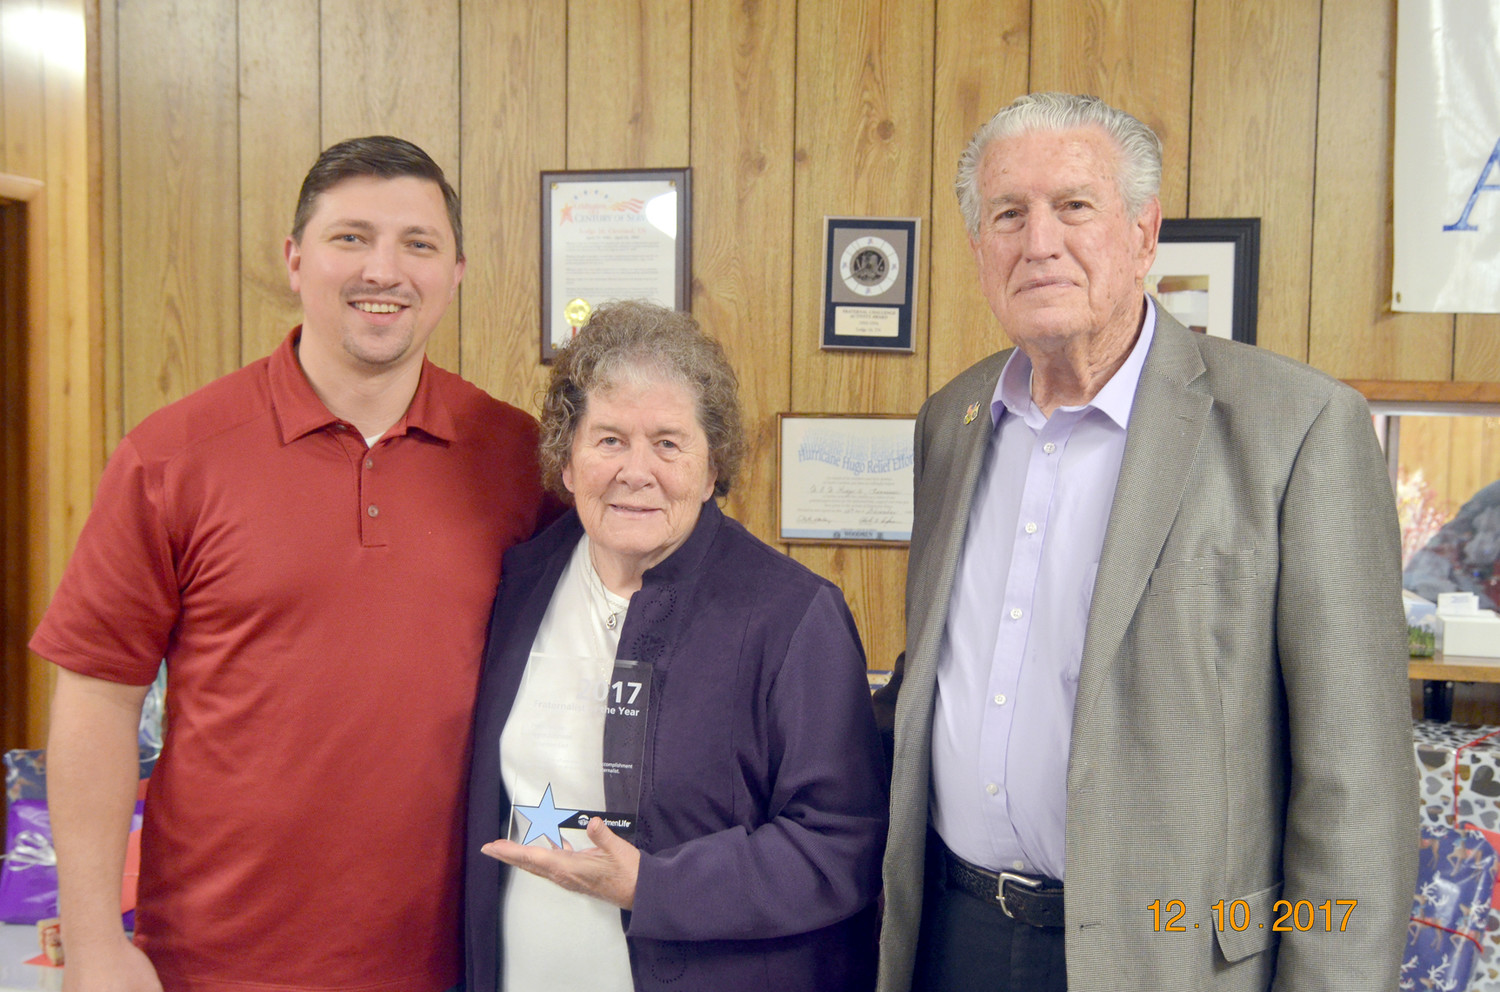 Joyce Johnson was recognized as 2017 Fraternalist of Year for East Tennessee, of the Woodmen Life. She was recognized for volunteer service, accomplishment and dedication as an outstanding fraternalist.  From left are Adam Lowe, regional director; Joyce Johnson; and WW Johnson, president of Chapter 16.